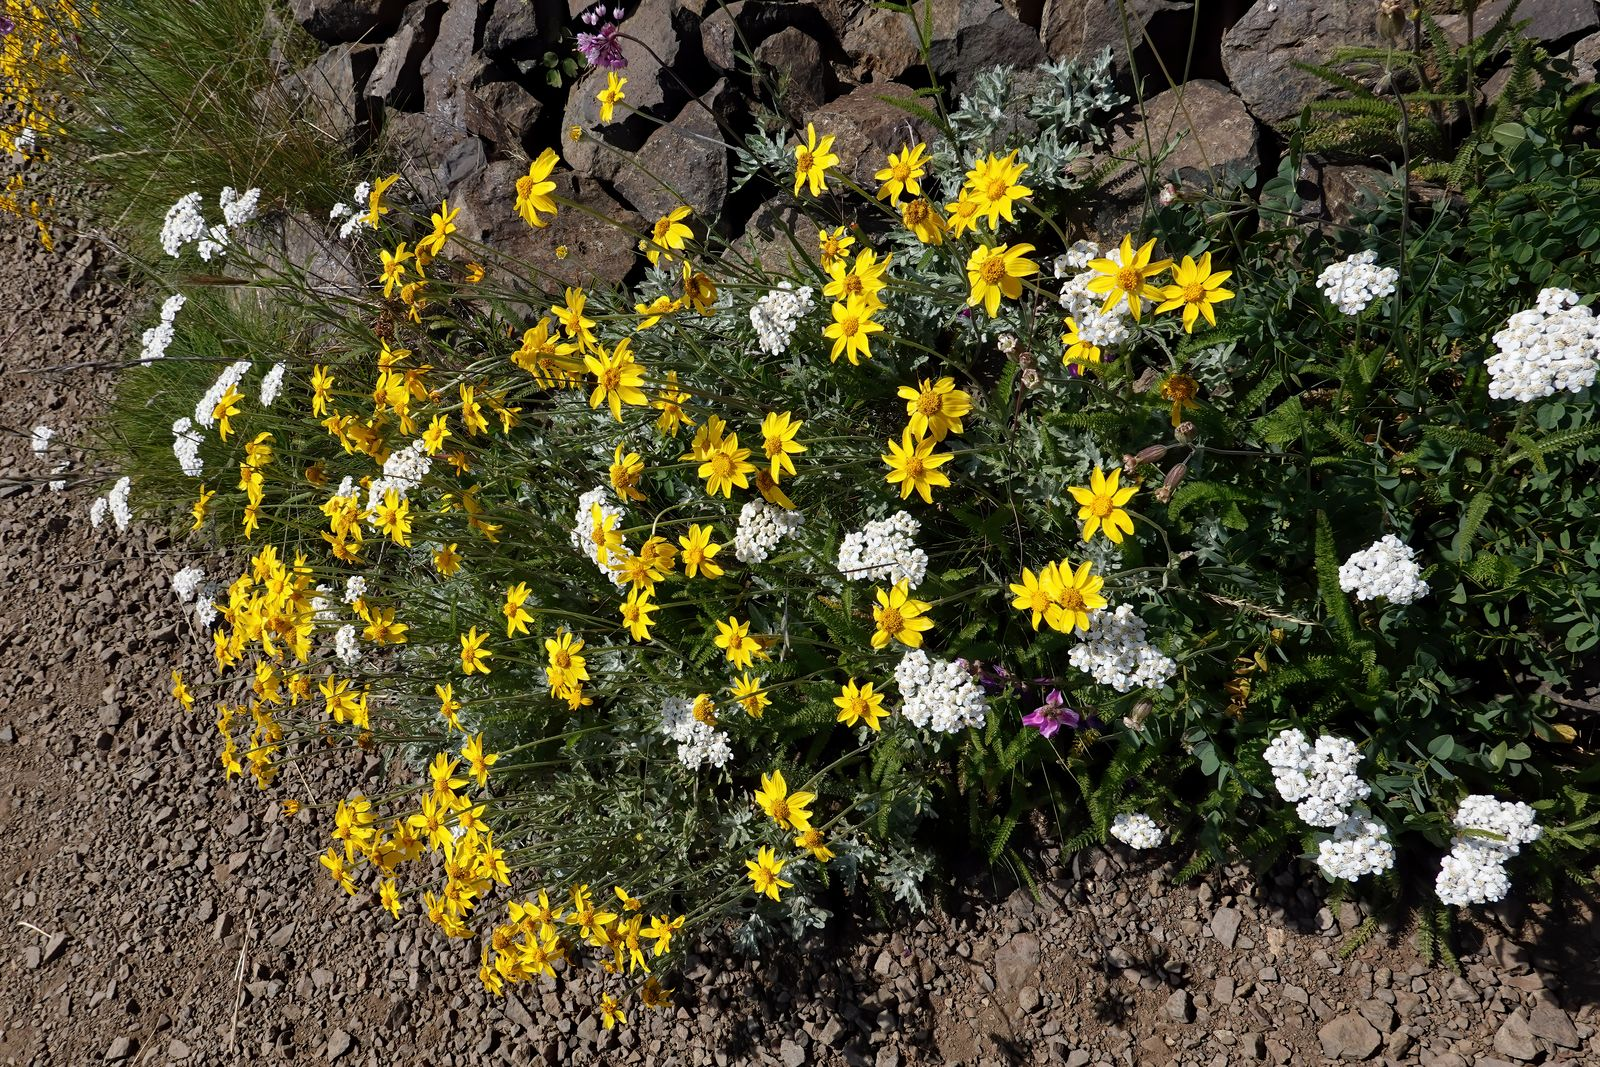 Another example of all the flowers along the trail